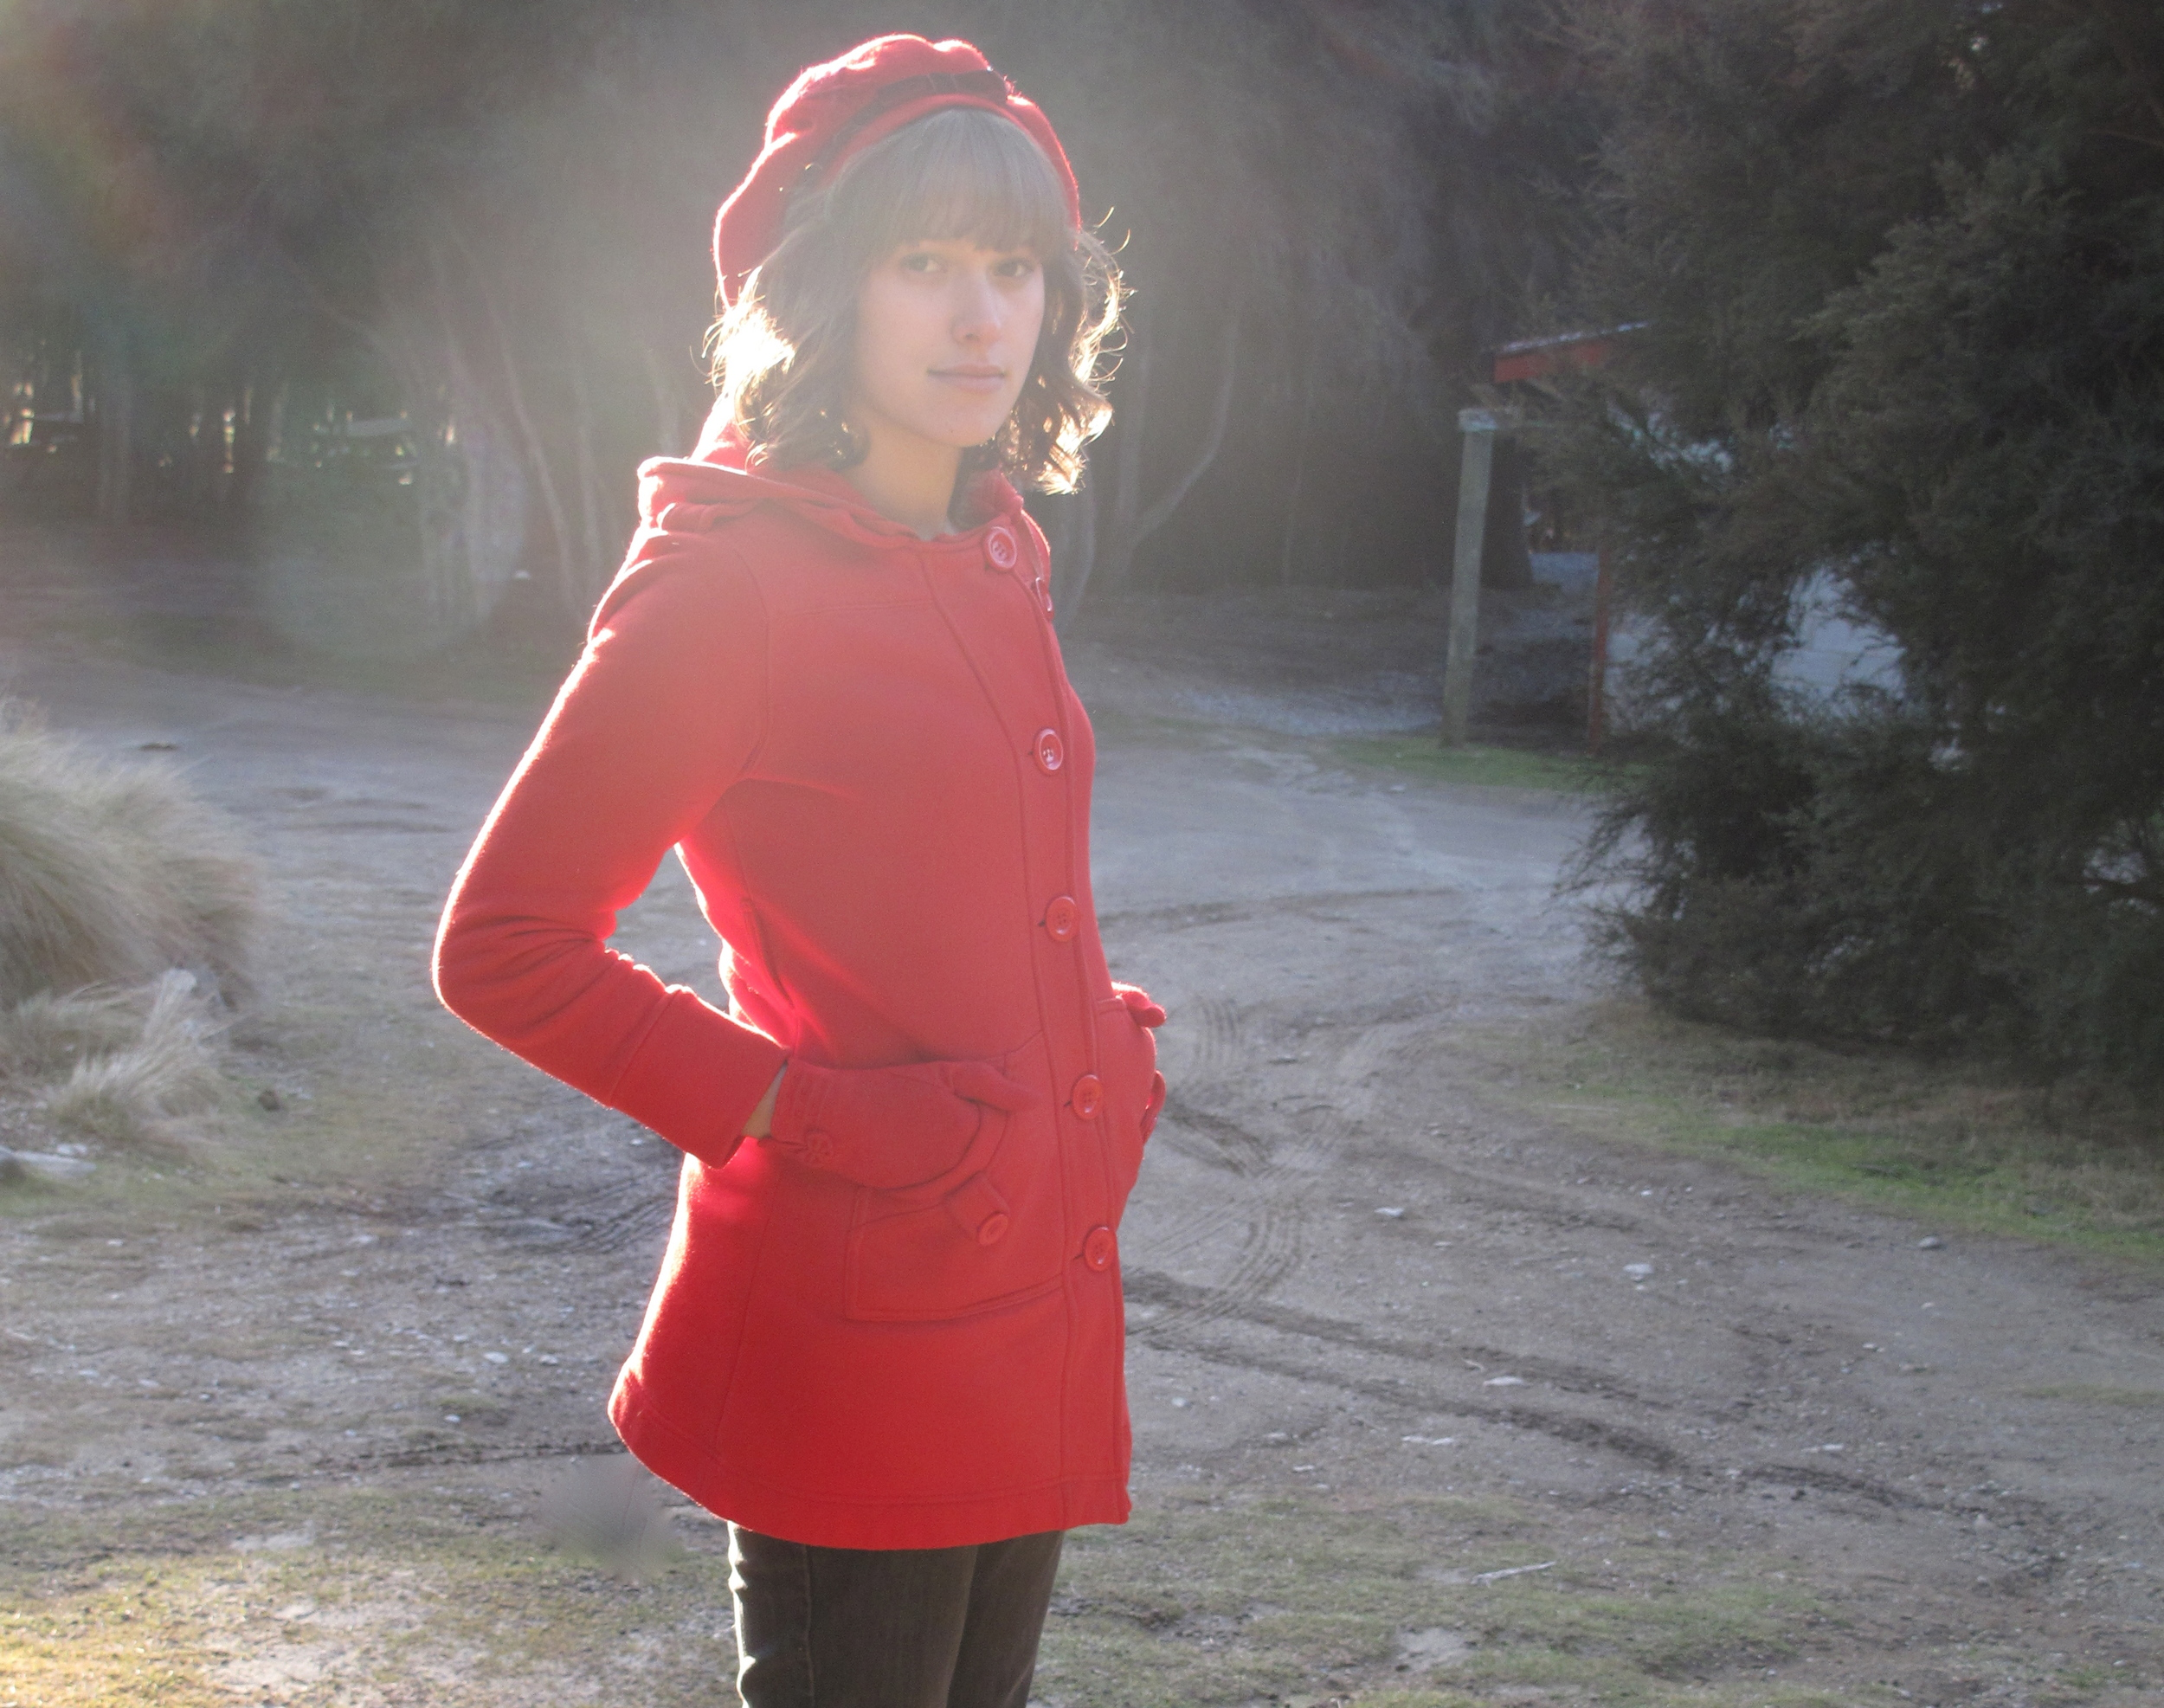 red riding hood in winter